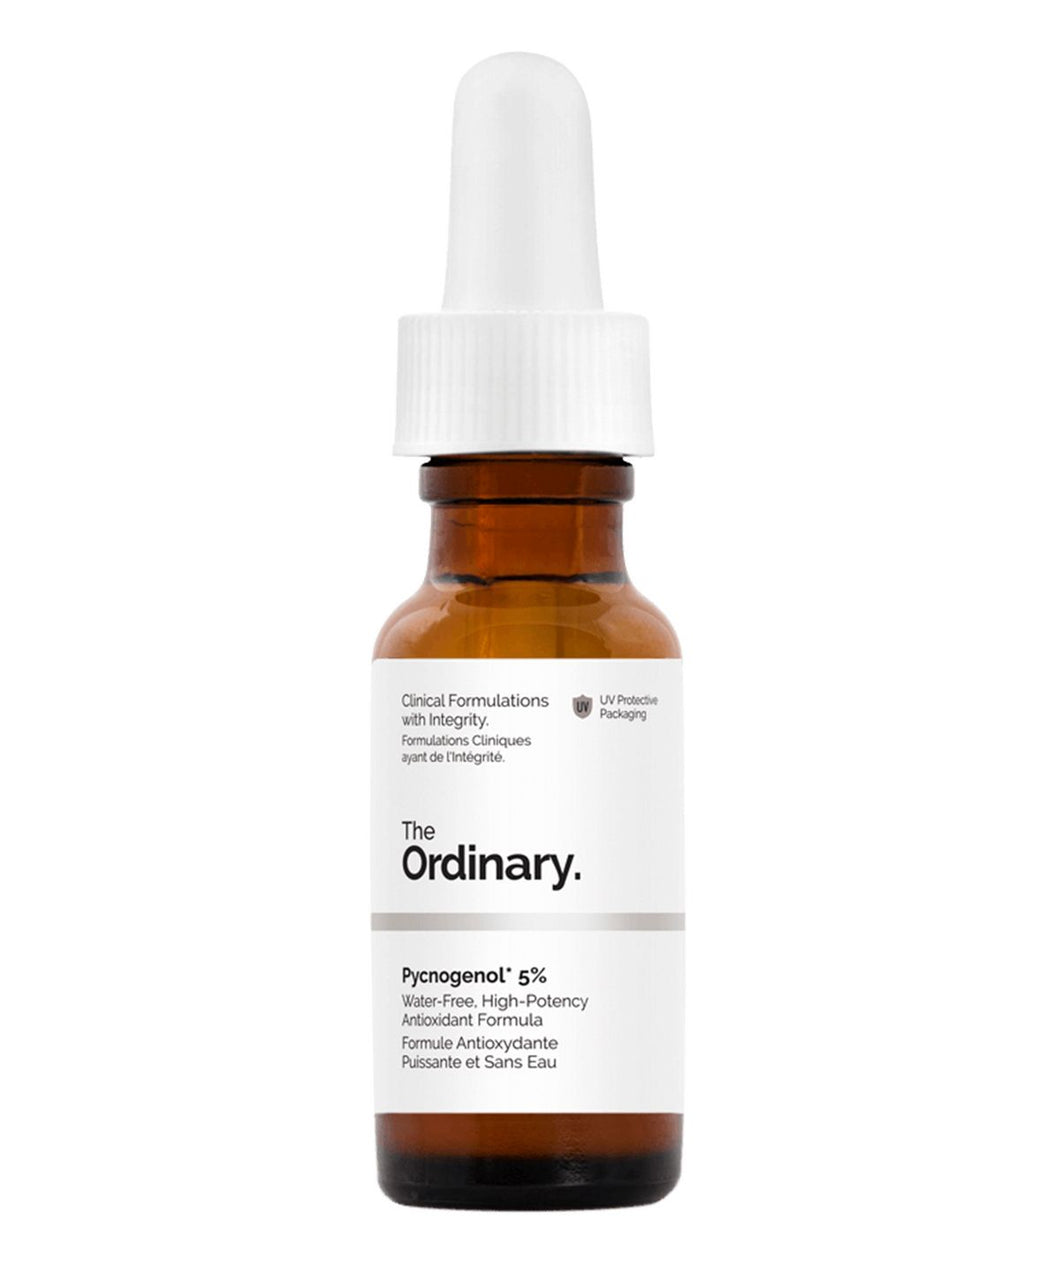 Pycnogenol 5% by The Ordinary in UAE